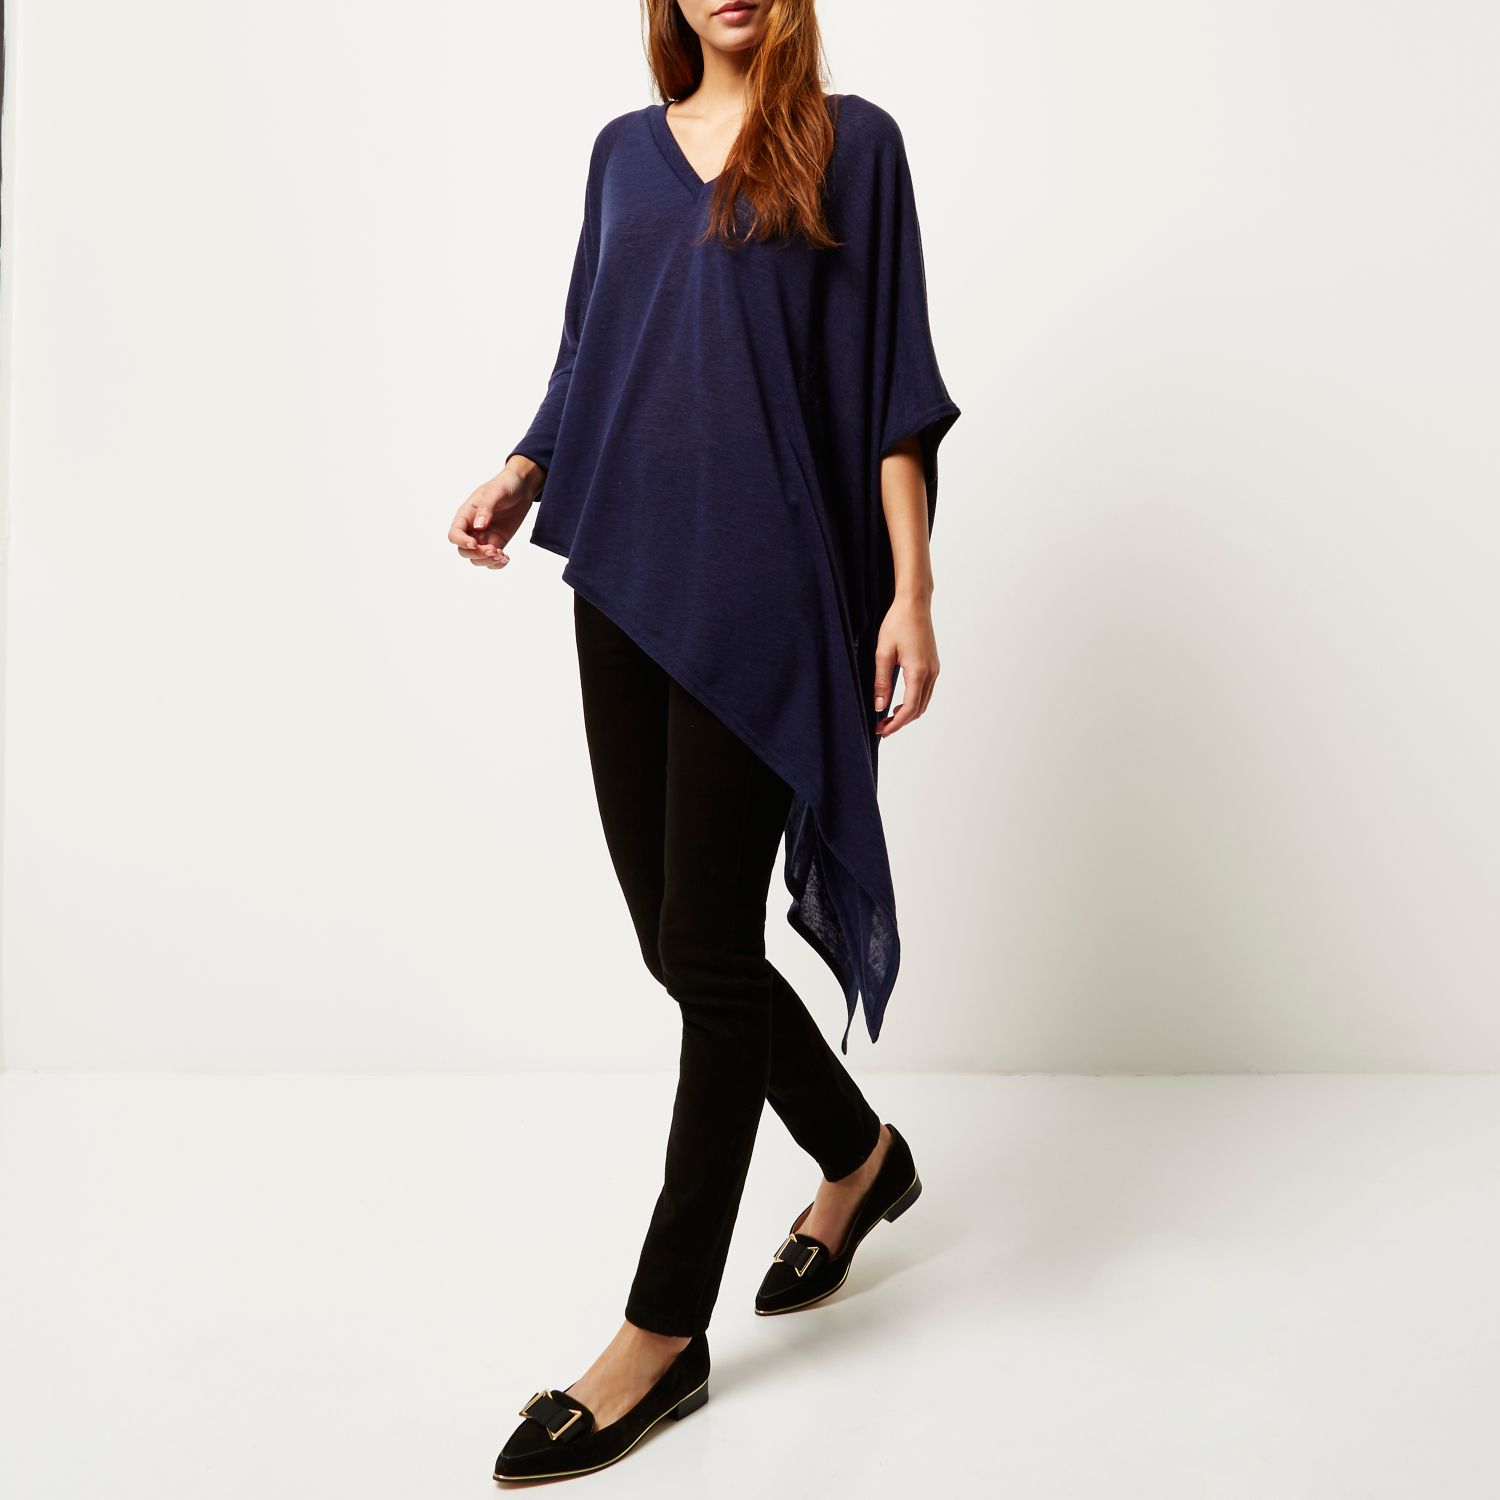 aacd4524a1029e River Island Navy Slouchy V-neck Asymmetric Knitted Top in Blue - Lyst